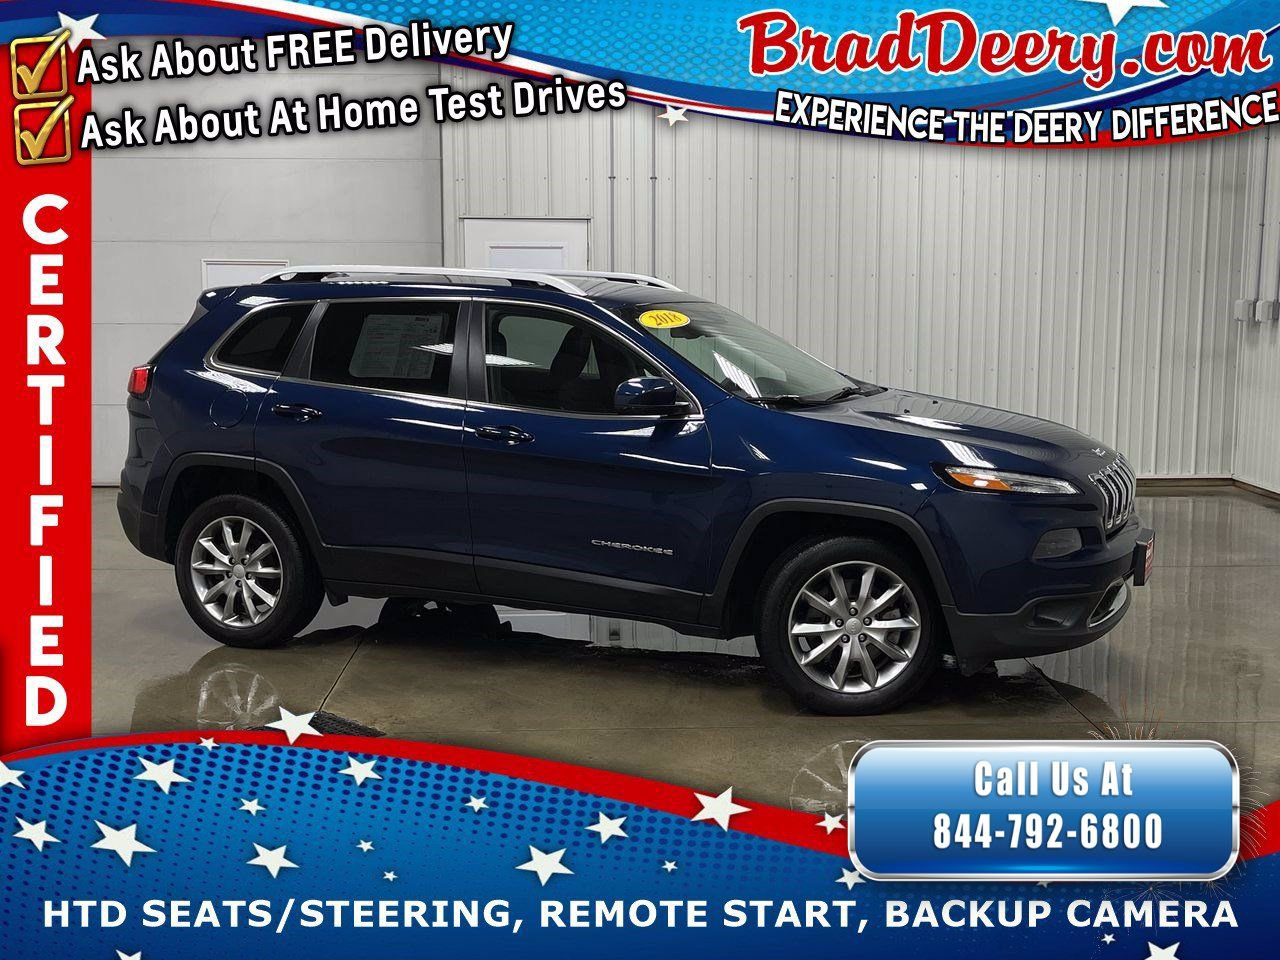 2018 Jeep Cherokee Limited w/ Heated Leather Seats, Remote Start, Back-Up Camera & Power Liftgate